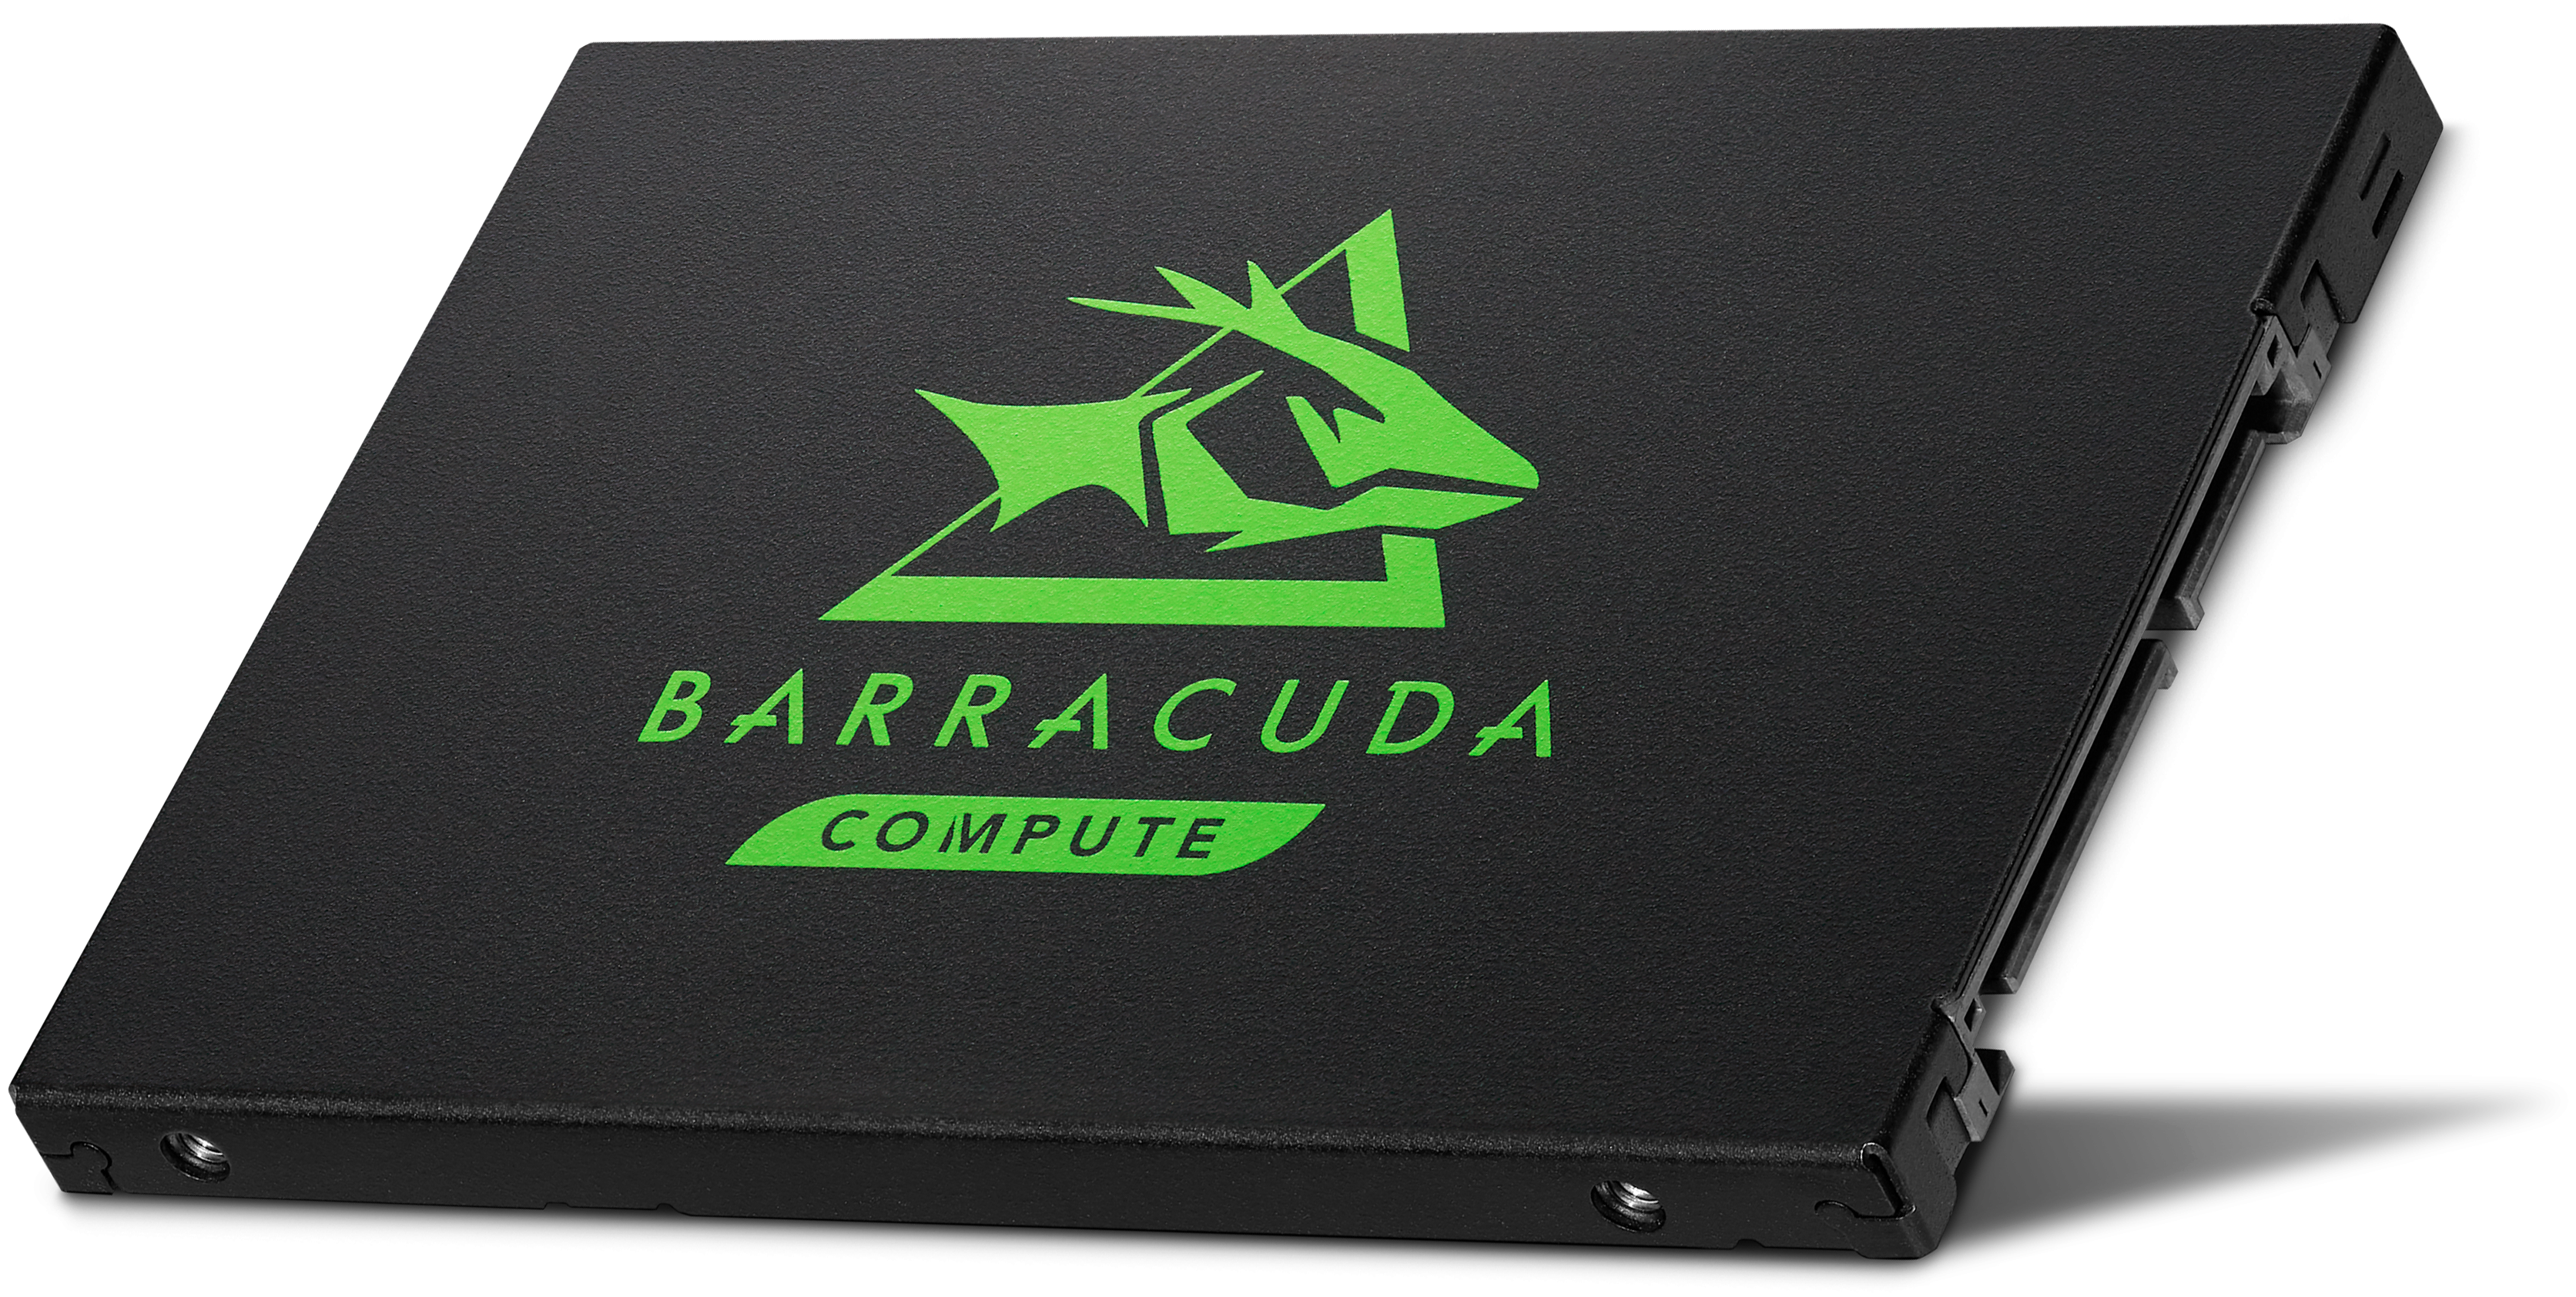 120 Barracuda SSD